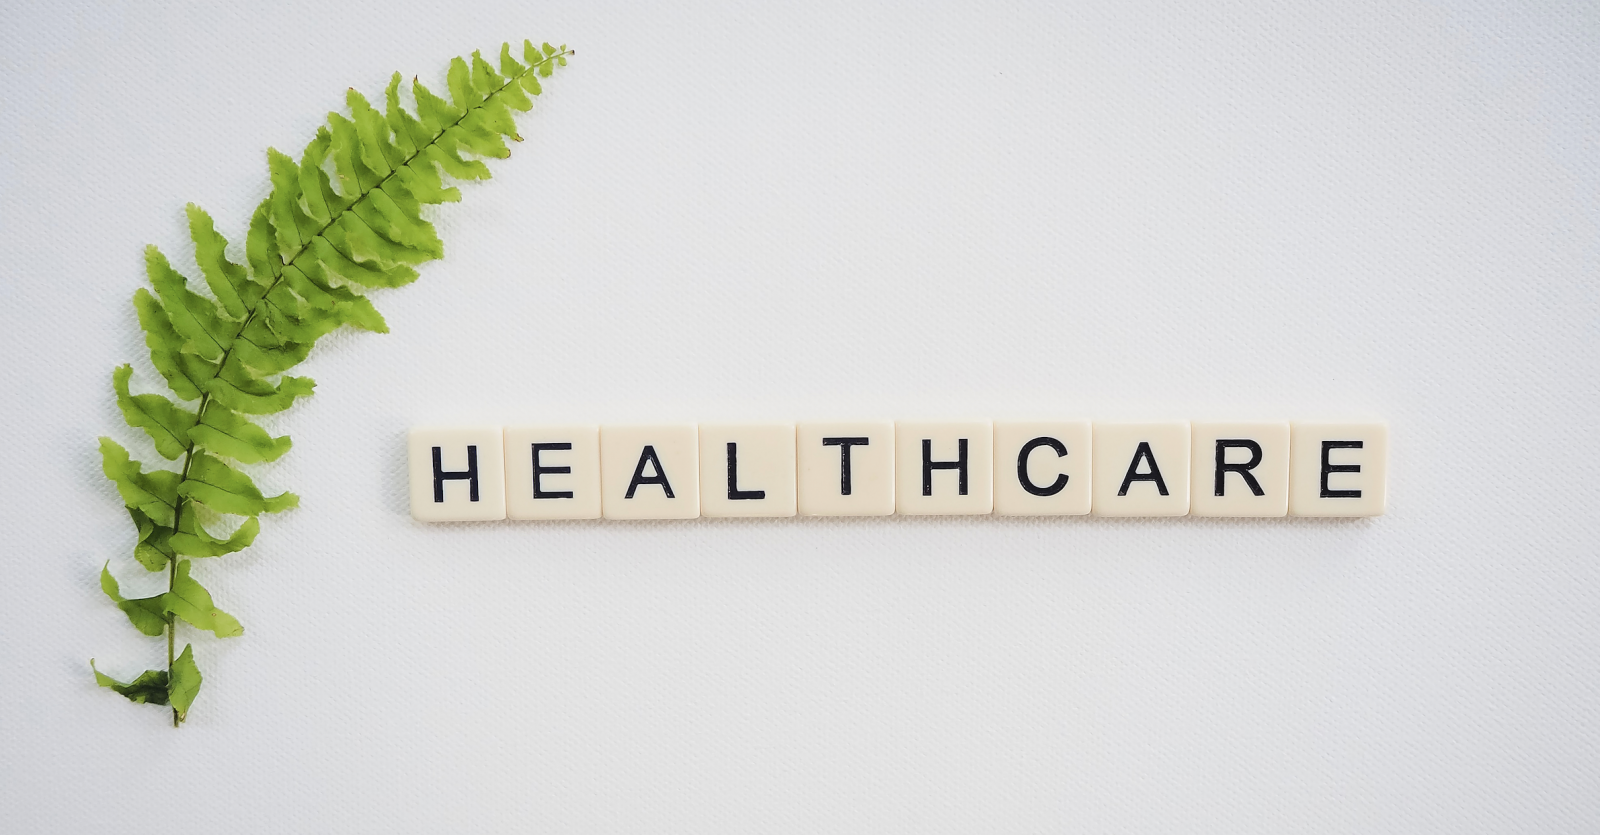 Healthcare proposals by the 2020 Democratic CandidatesHealthcare proposals by the 2020 Democratic Candidates